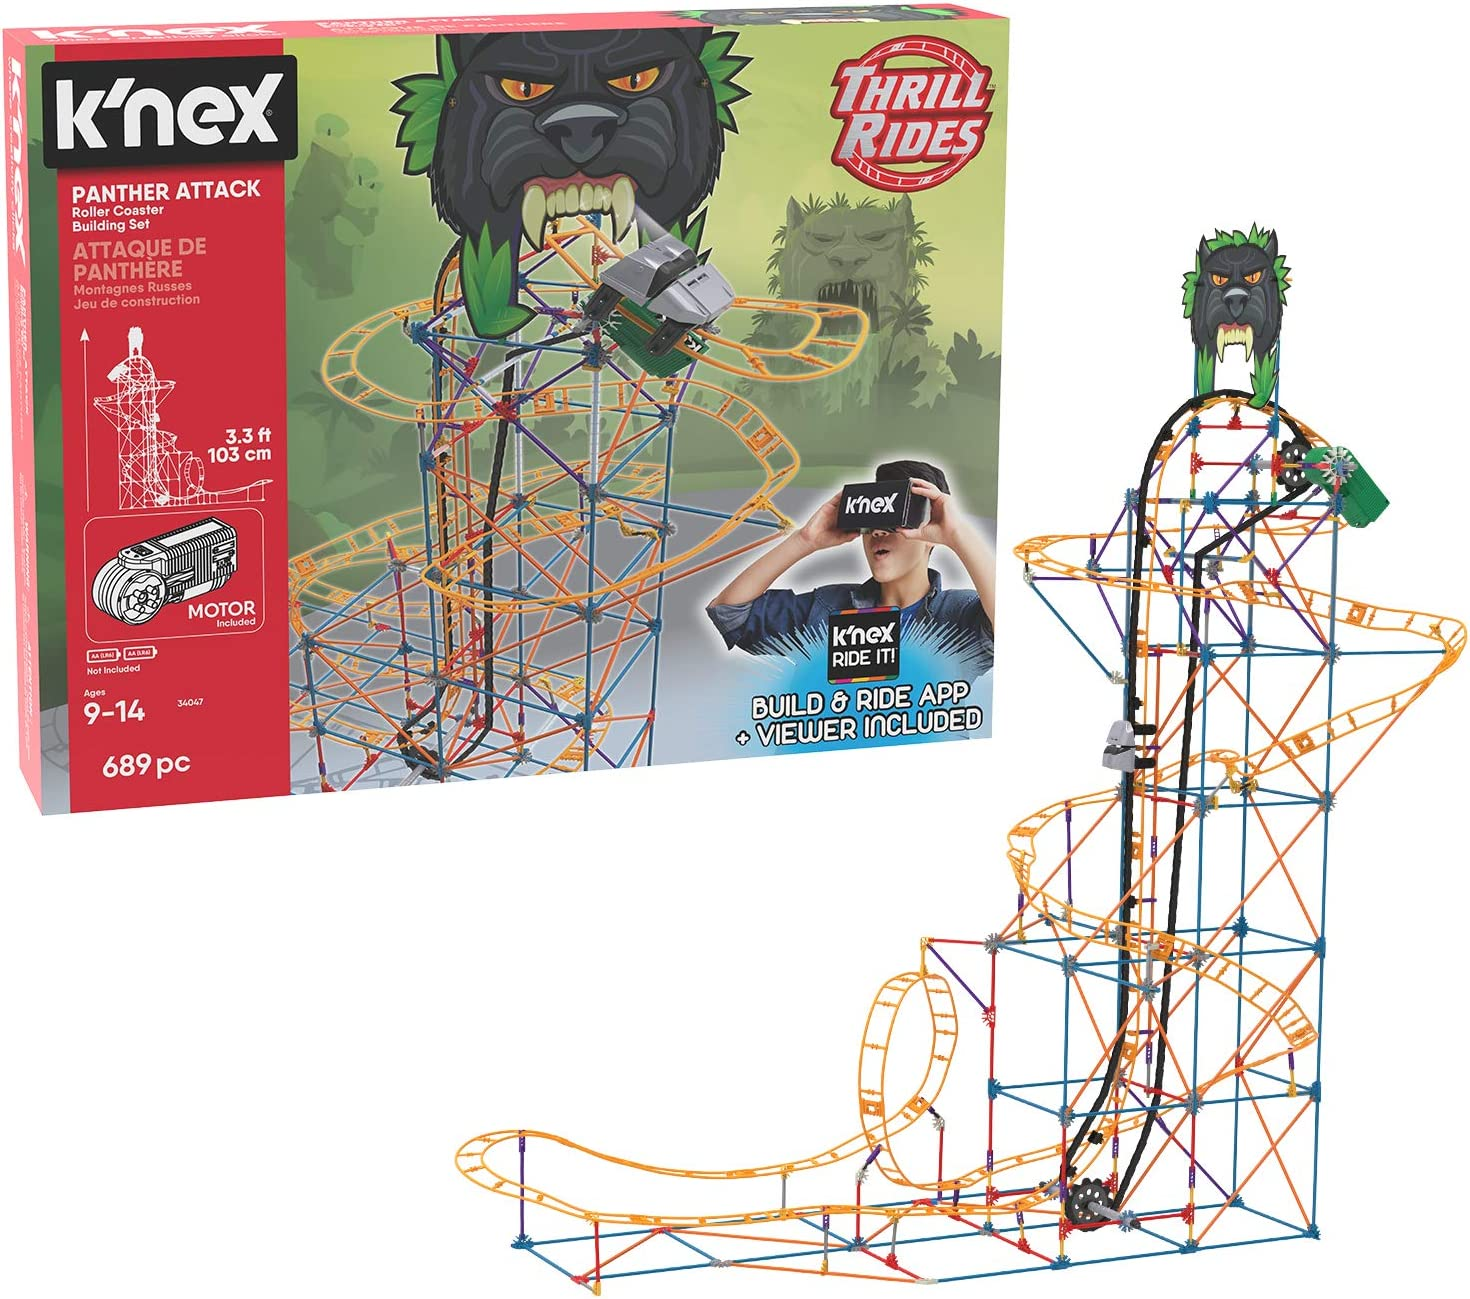 Panther Attack Roller Coaster Building Set with Ride It!App K/'NEX Thrill Rides